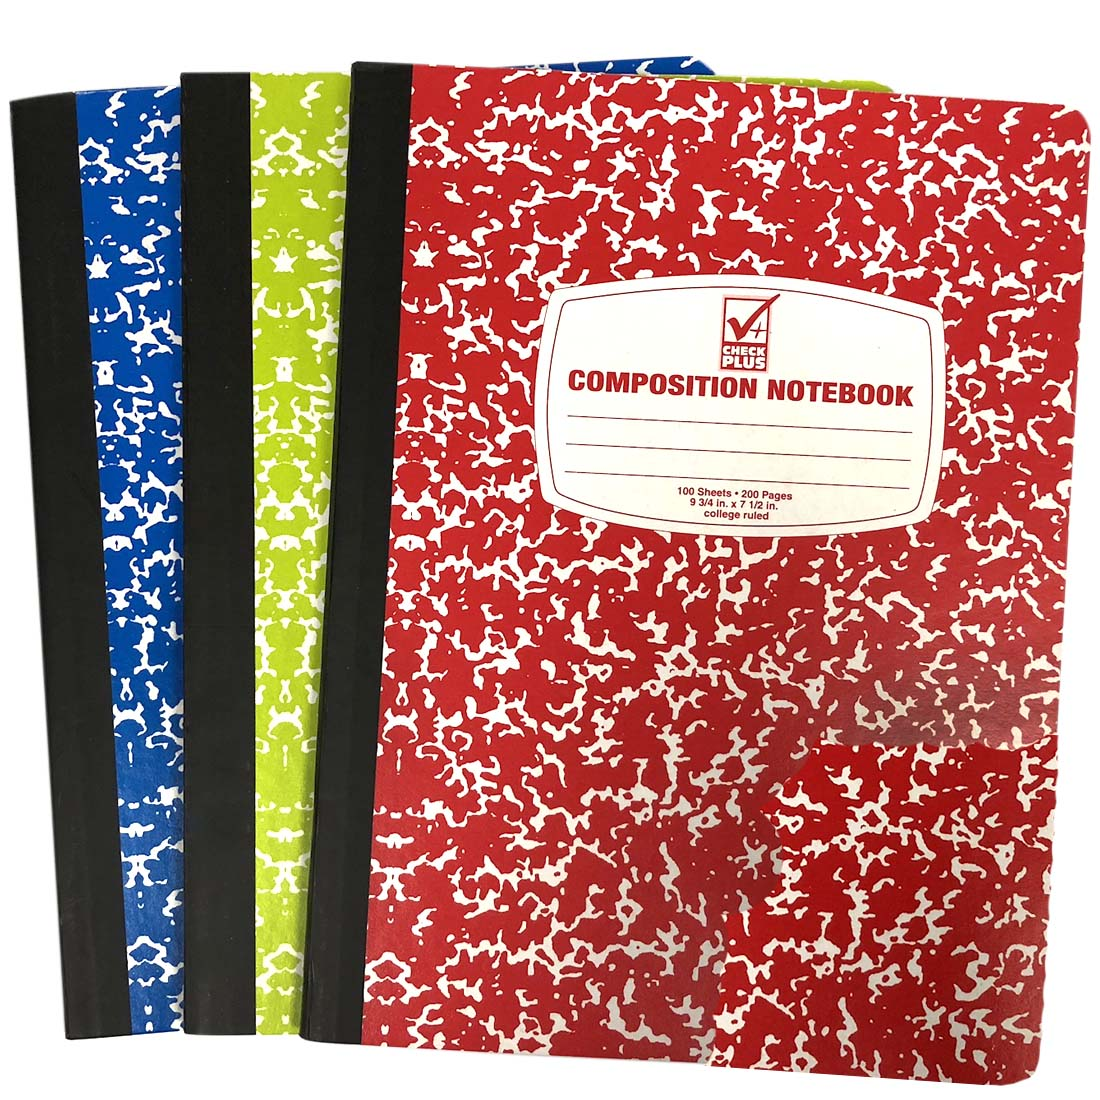 View COMPOSITION NOTEBOOK 100 SHEET 9.75 X 7.5 INCH COLLEGE RULE ASSORTED COLORS